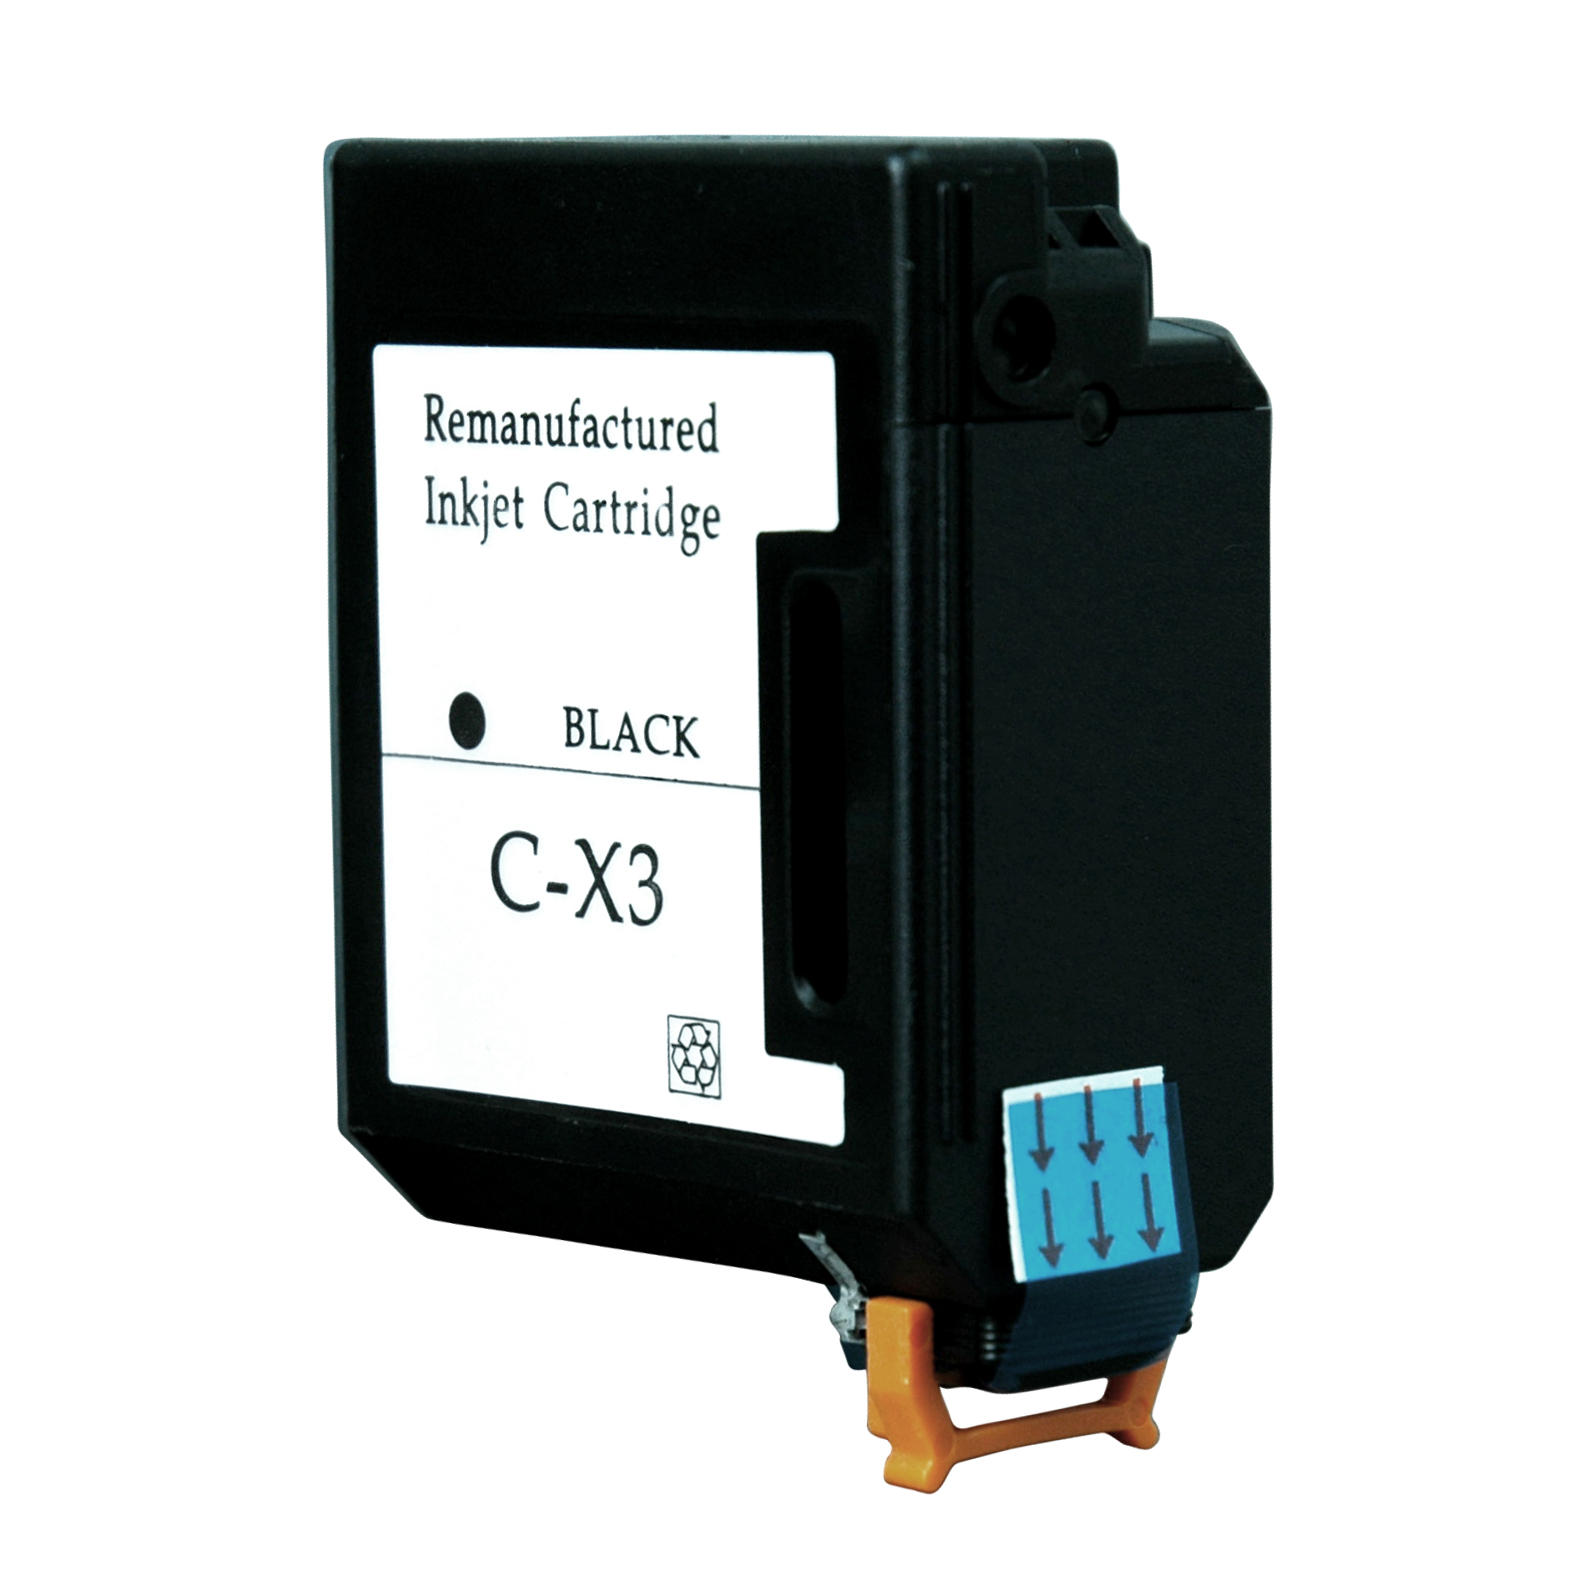 Canon BX-3 Remanufactured Black Ink Cartridge